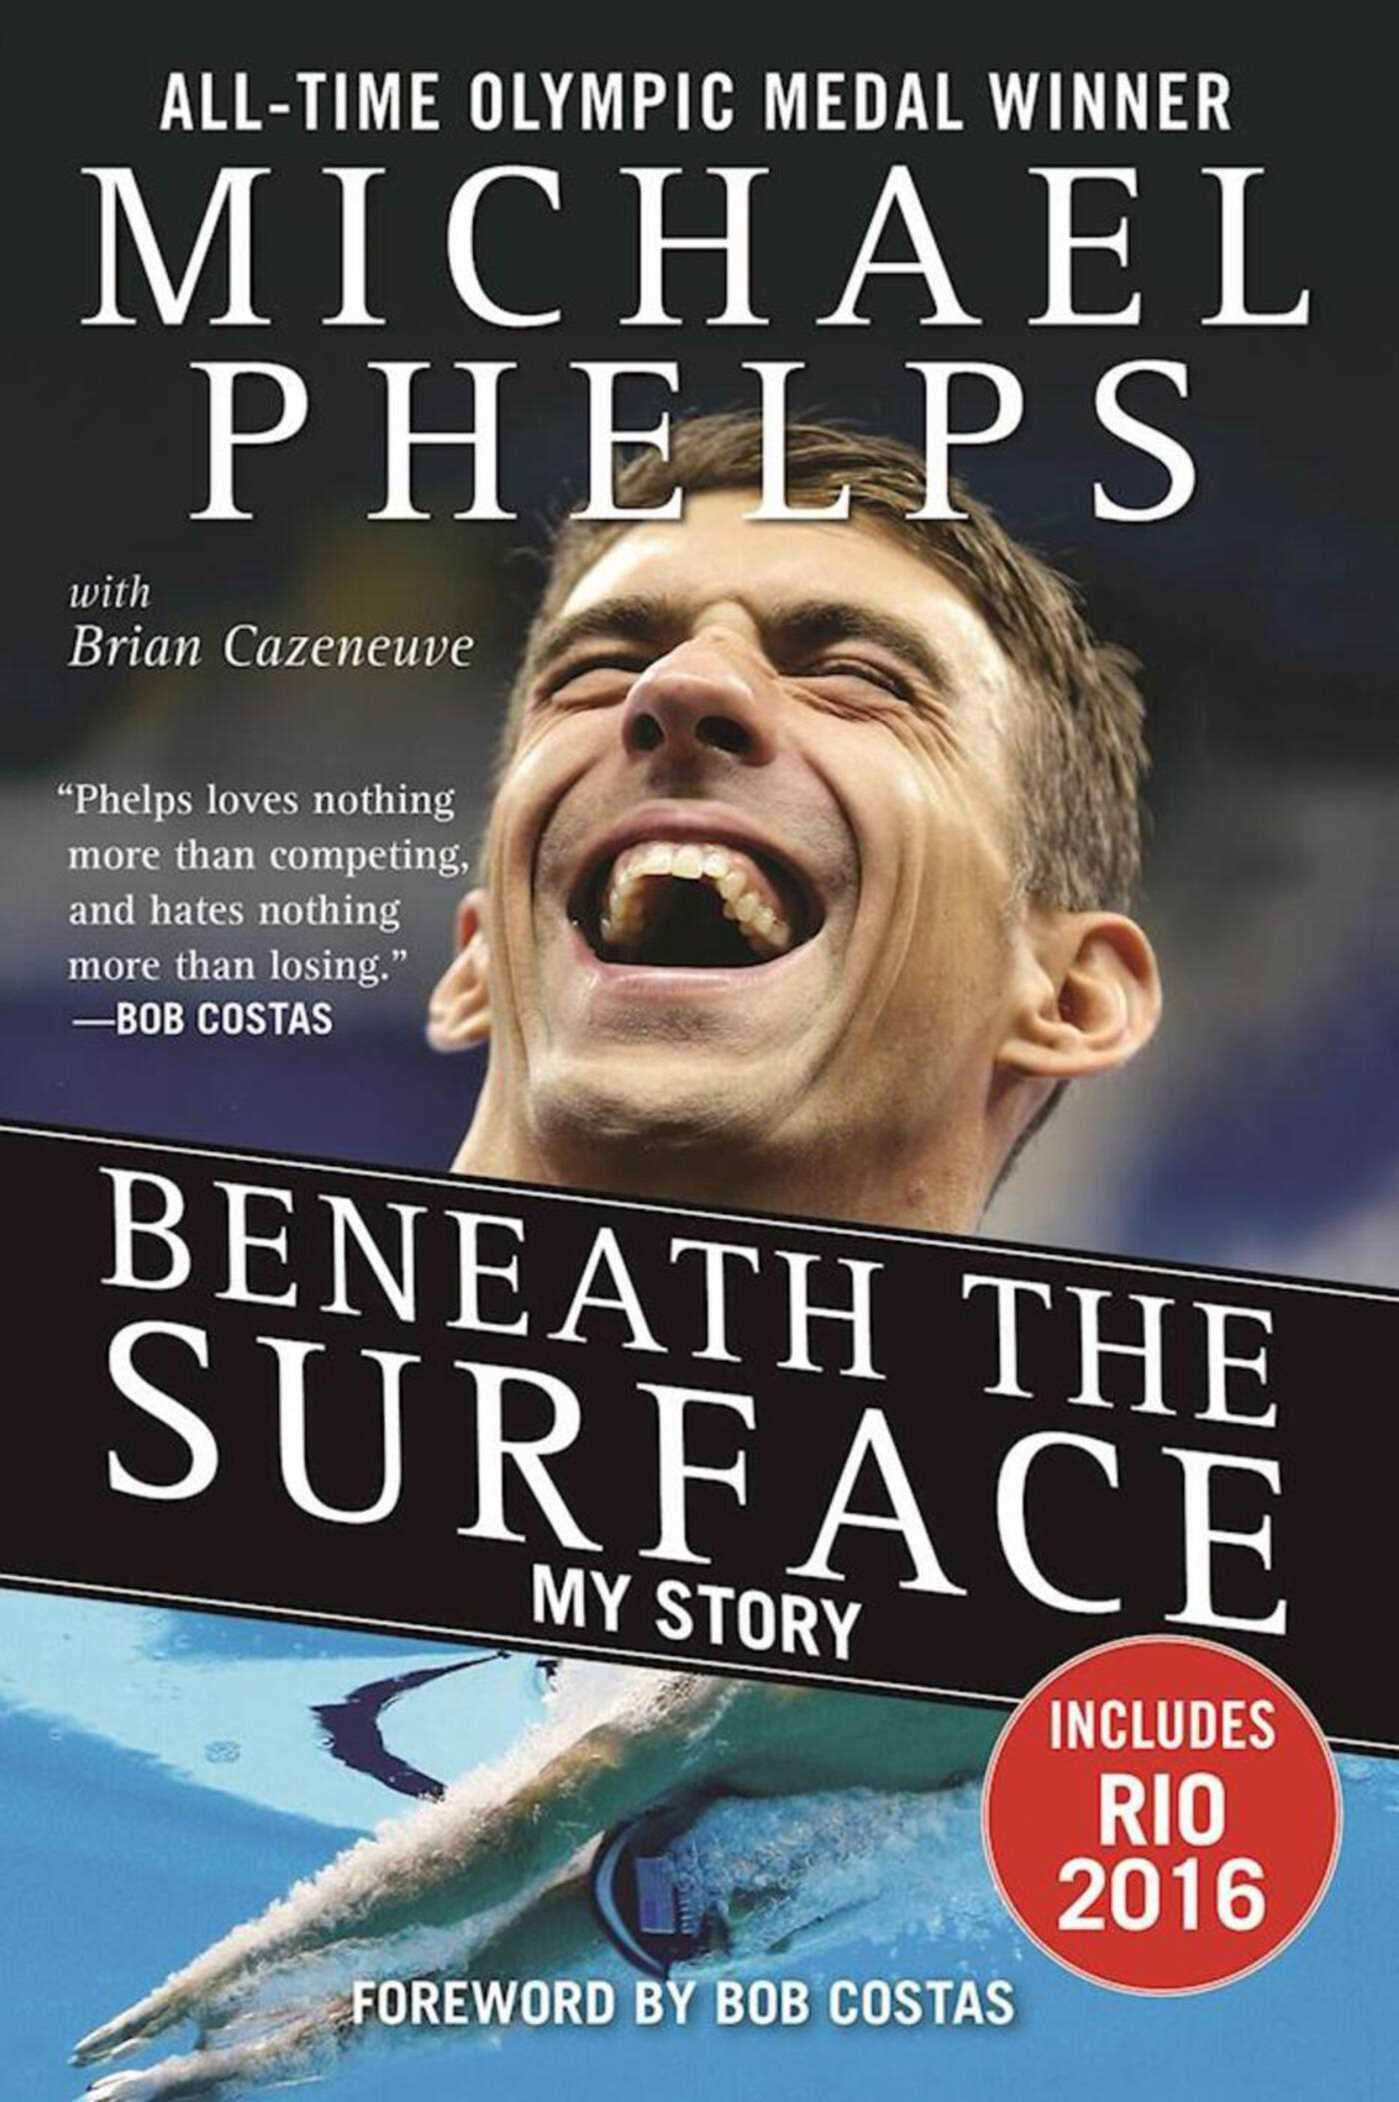 Other Titles by Michael Phelps